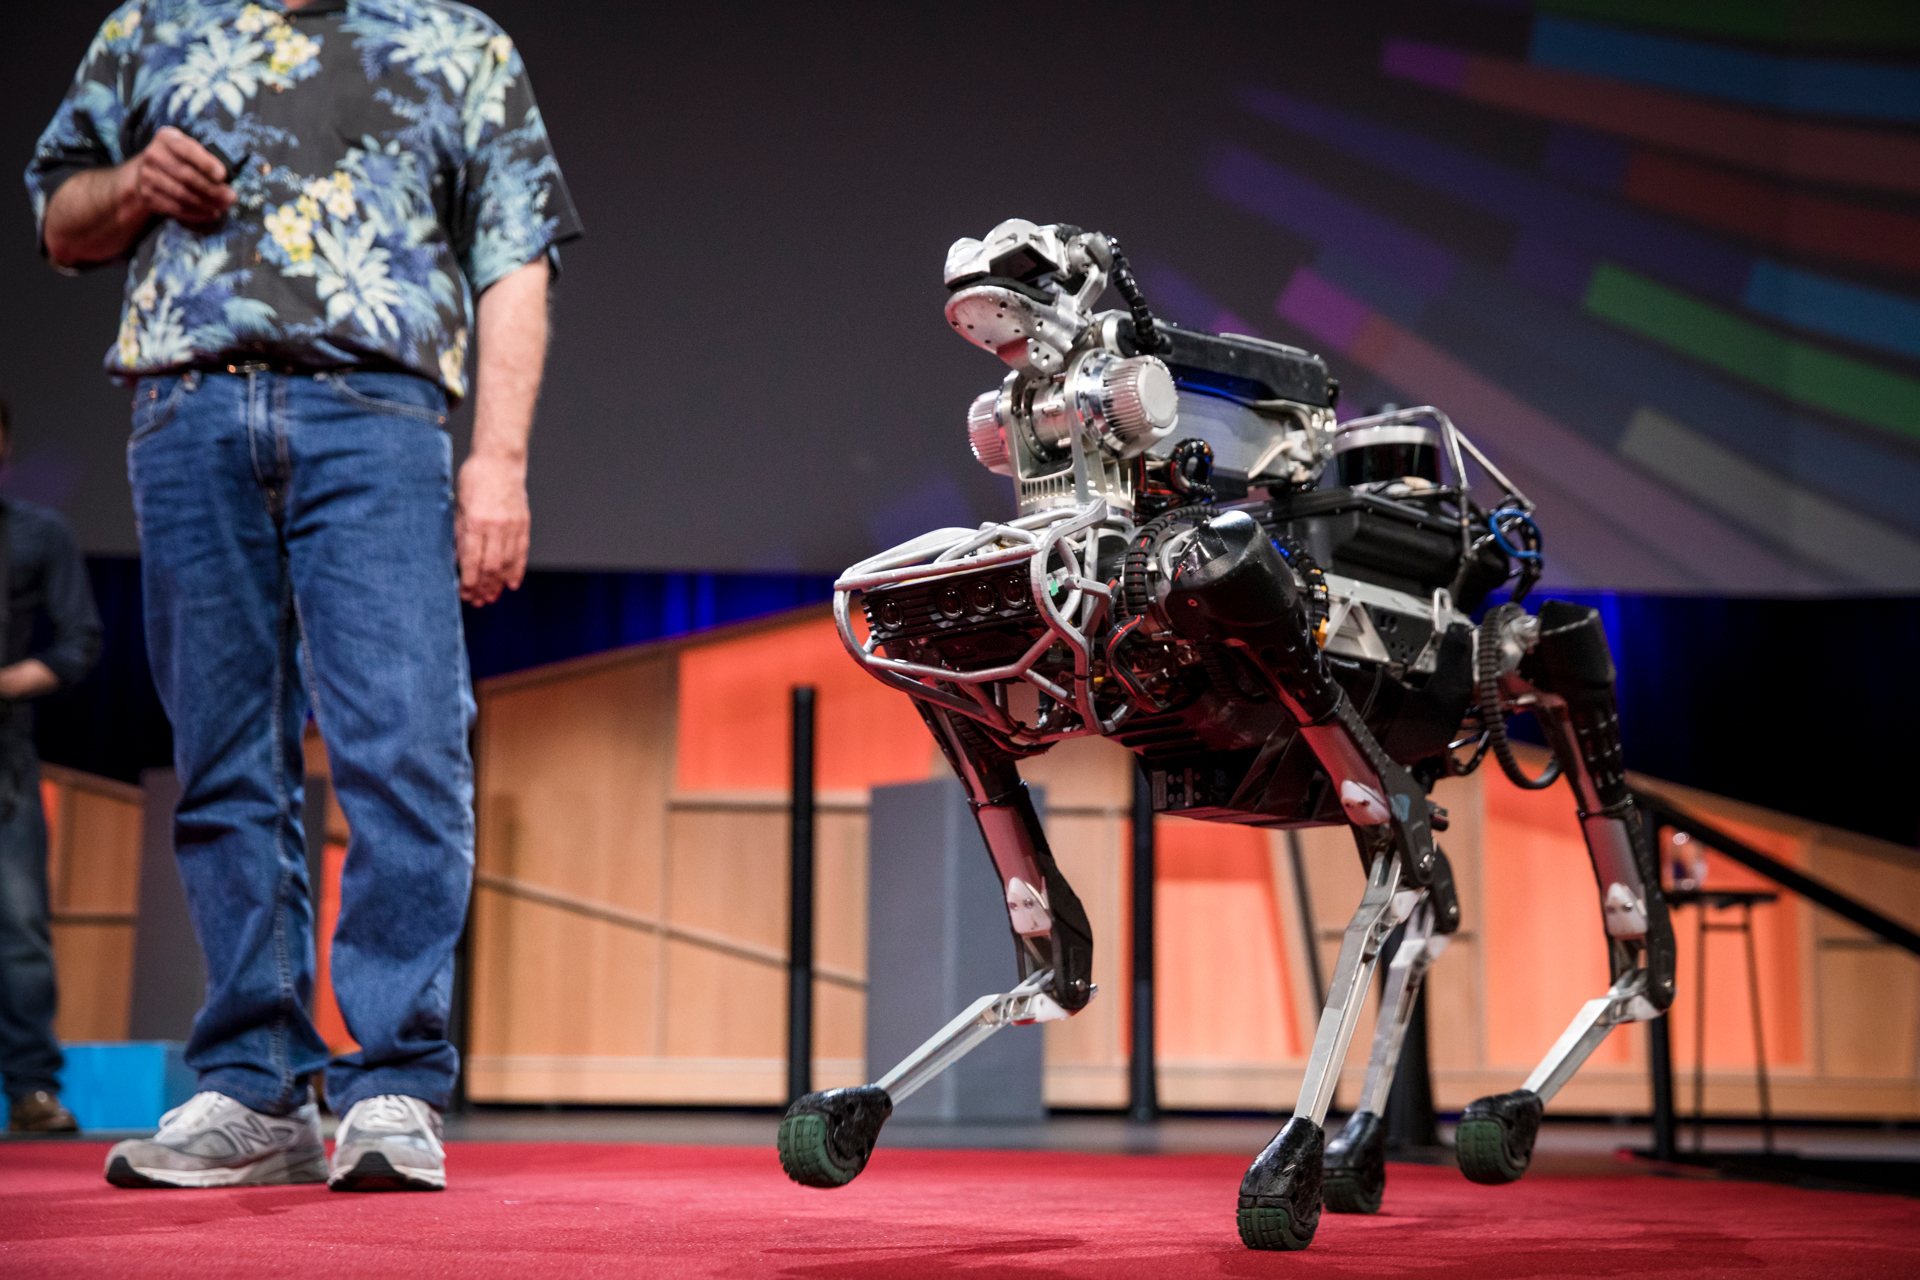 Mail Dog: Robotic Dog 'Spot' Could Deliver Your Next Package